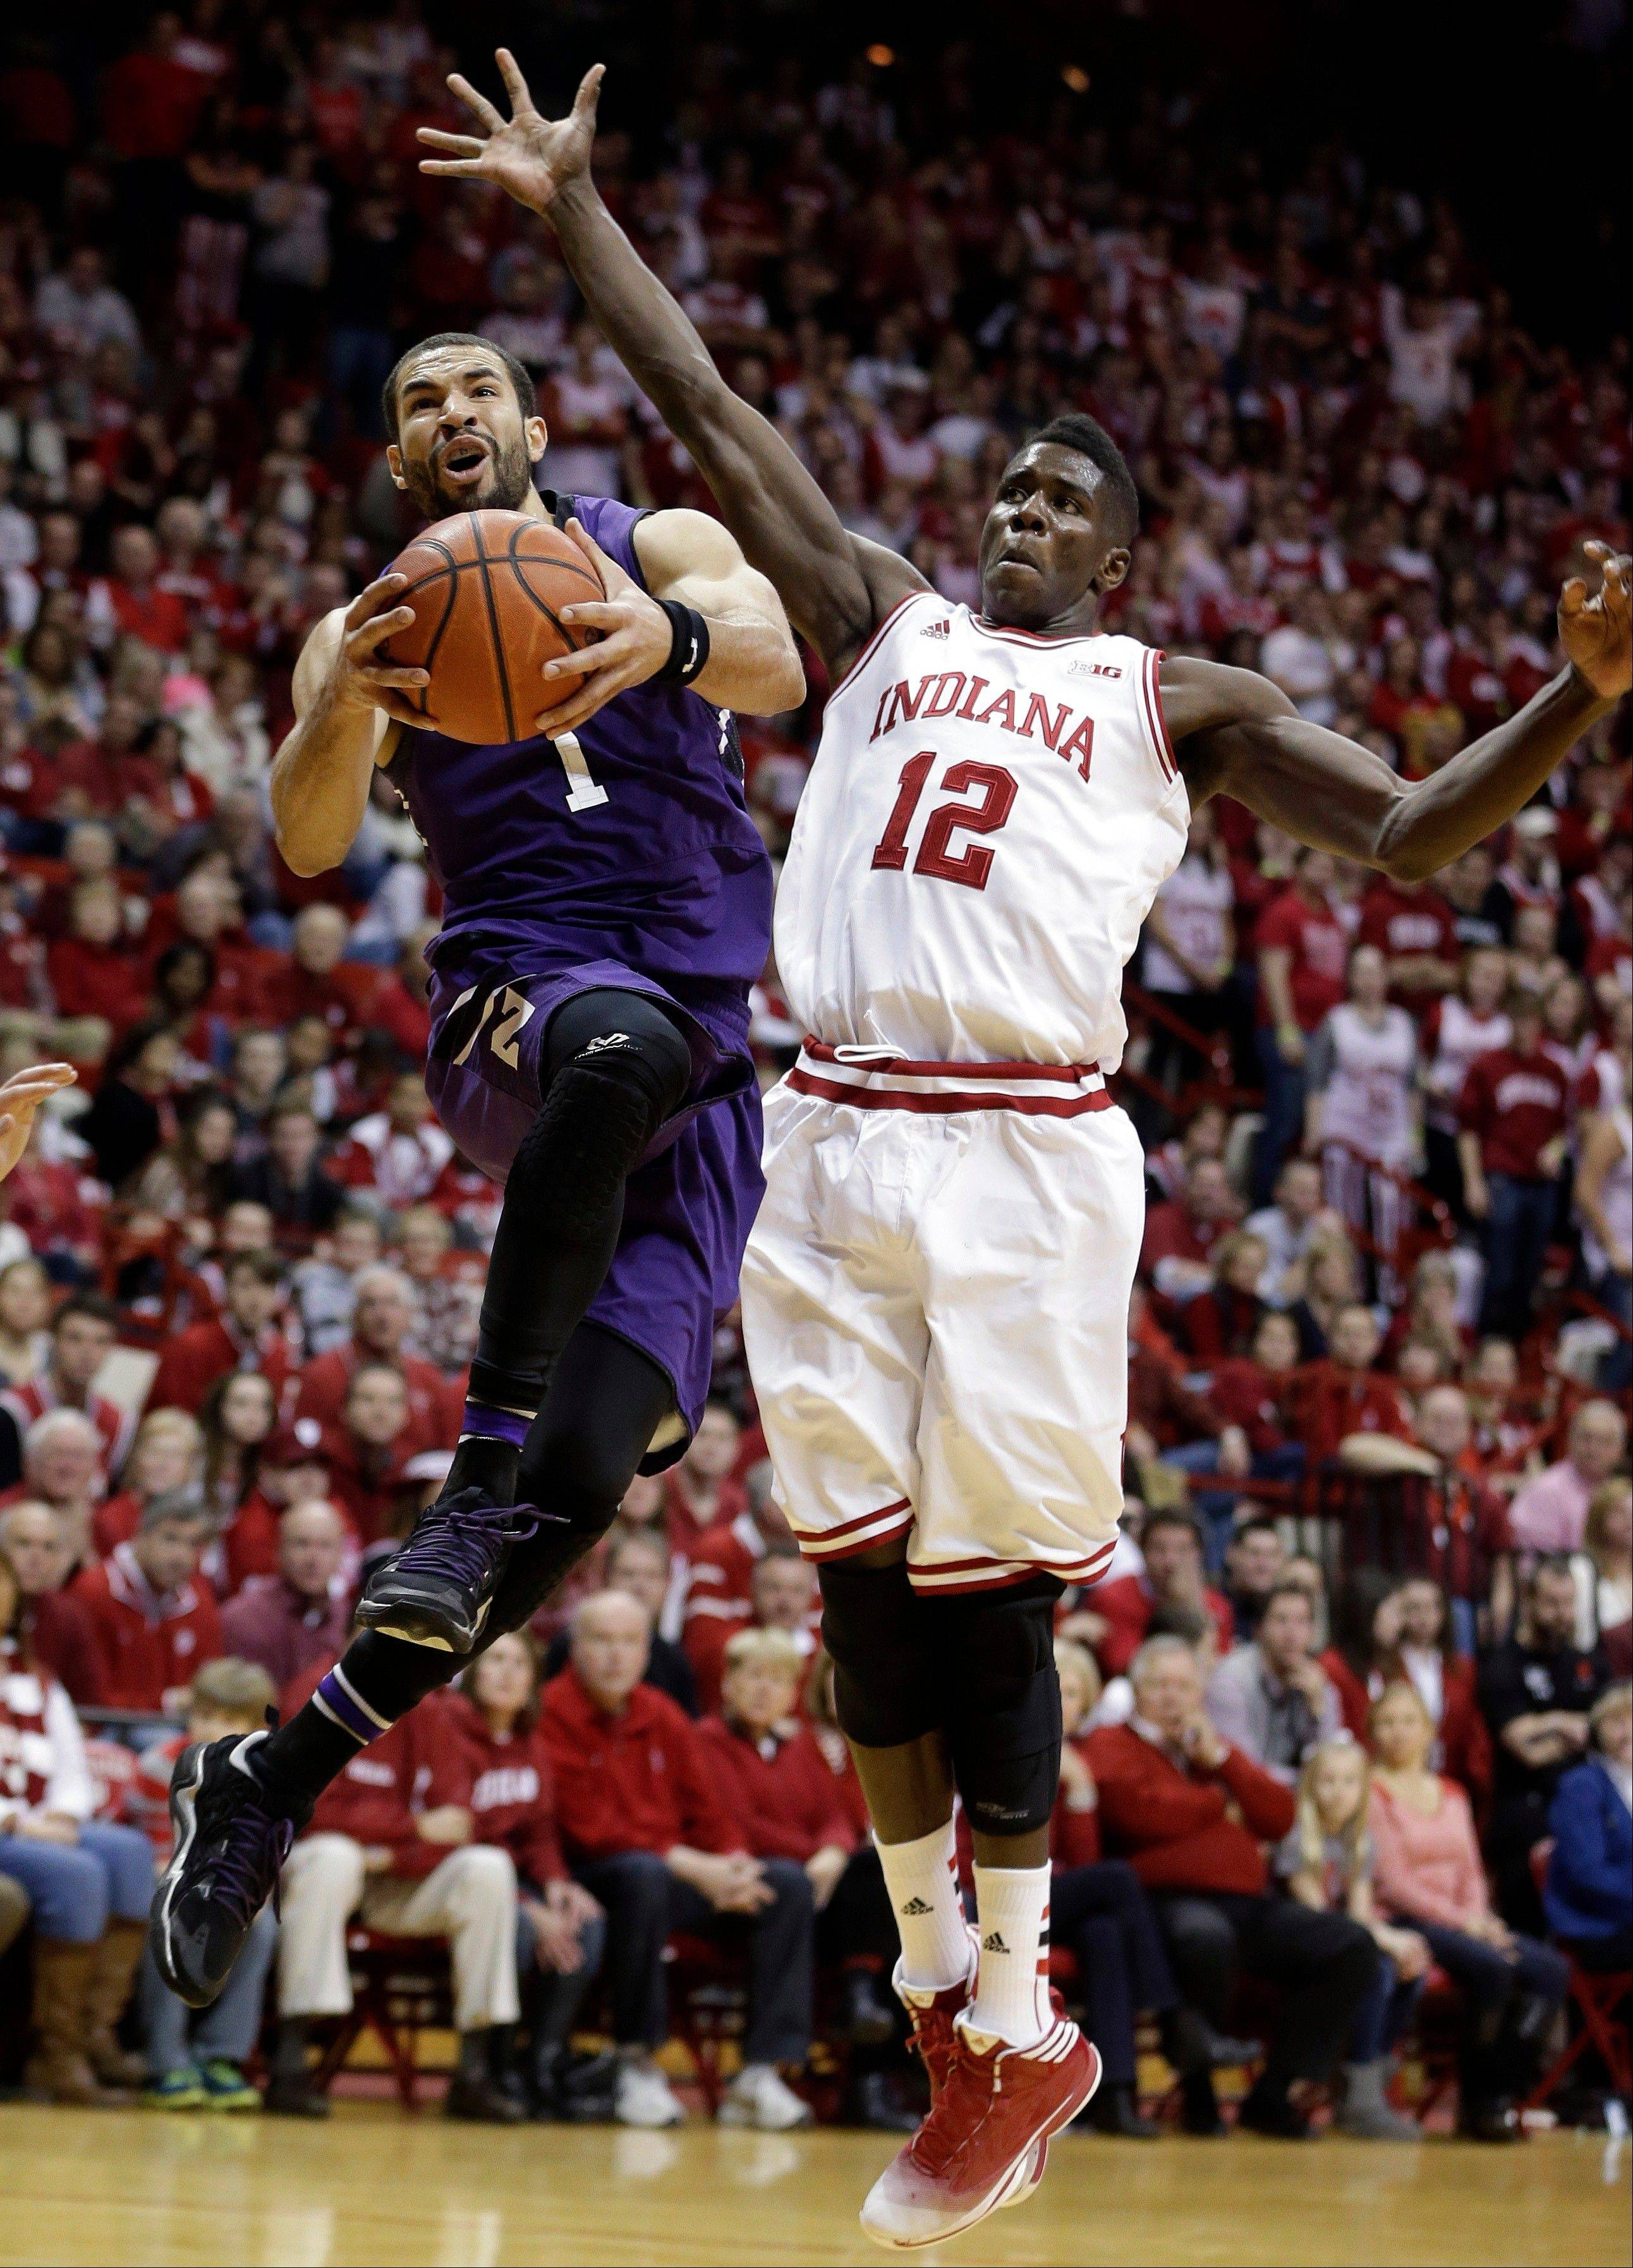 Northwestern's Drew Crawford (1) put up a shot against Indiana's Hanner Mosquera-Perea (12) during the first half of an NCAA college basketball game Saturday, Jan. 18, 2014, in Bloomington, Ind.